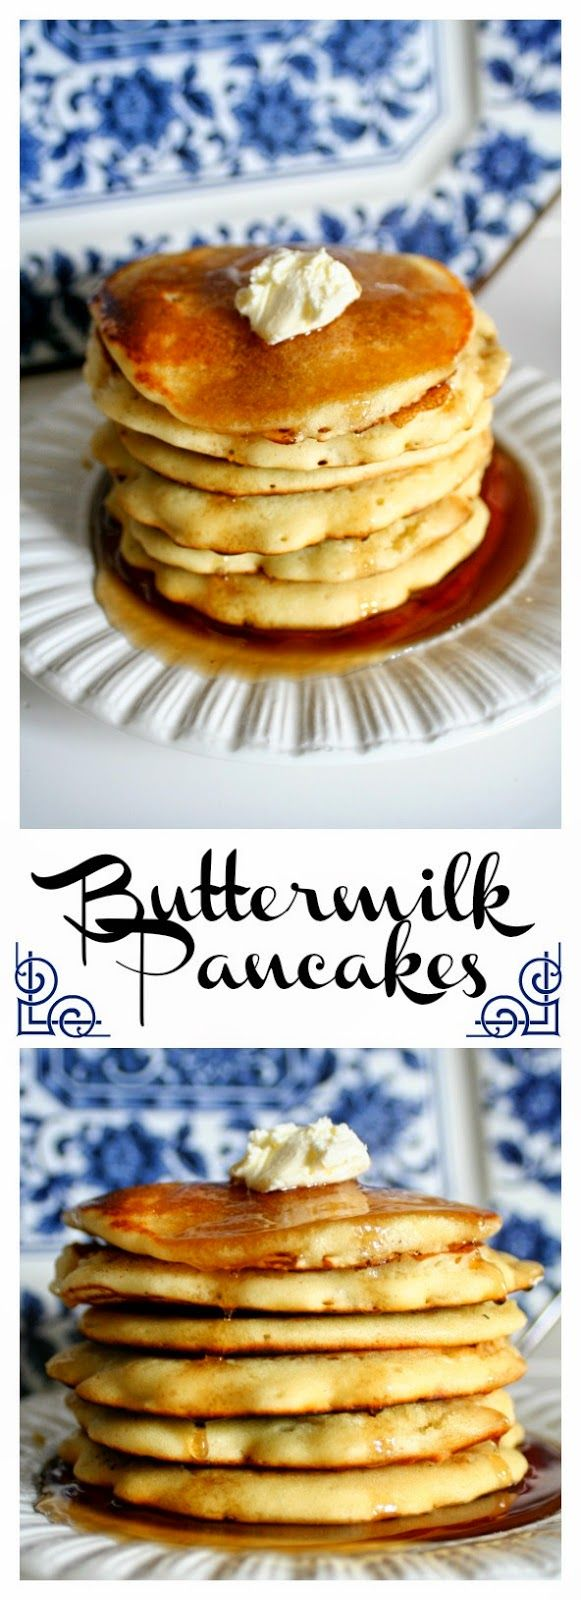 Buttermilk Pancakes – quick, easy, and so much better than box mix pancakes